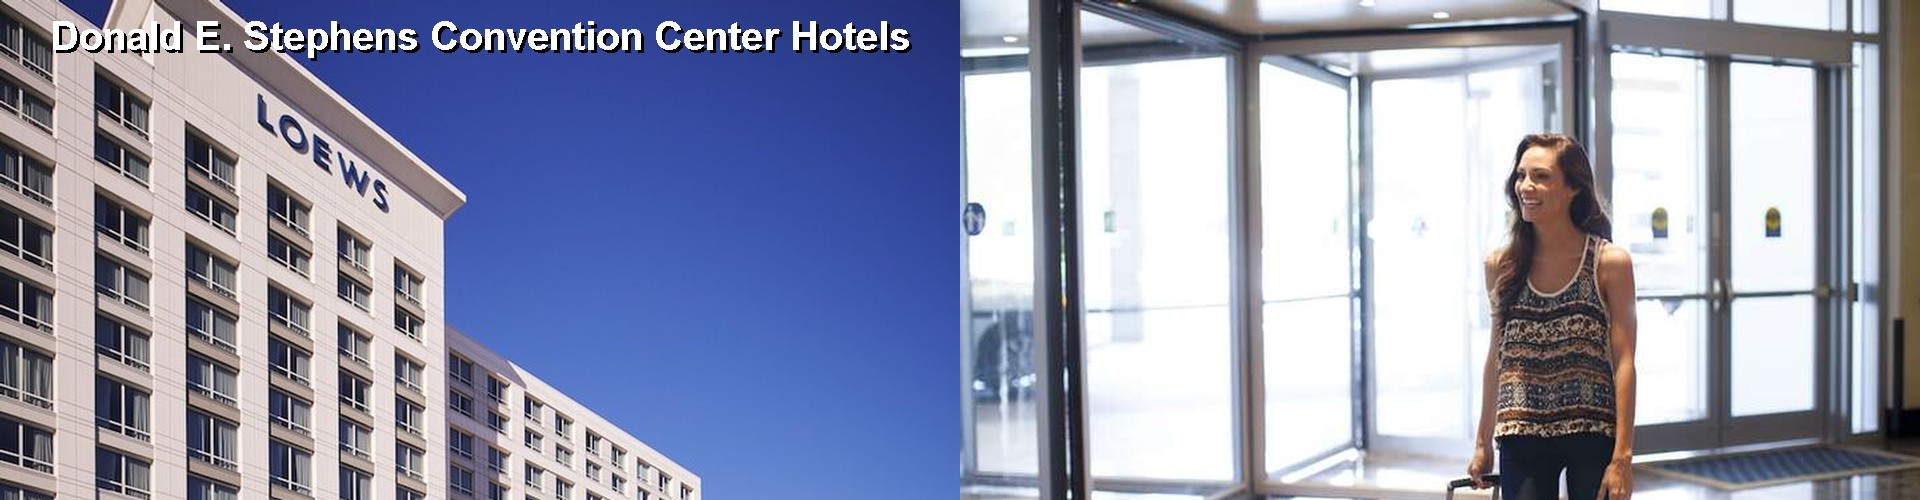 5 Best Hotels Near Donald E Stephens Convention Center